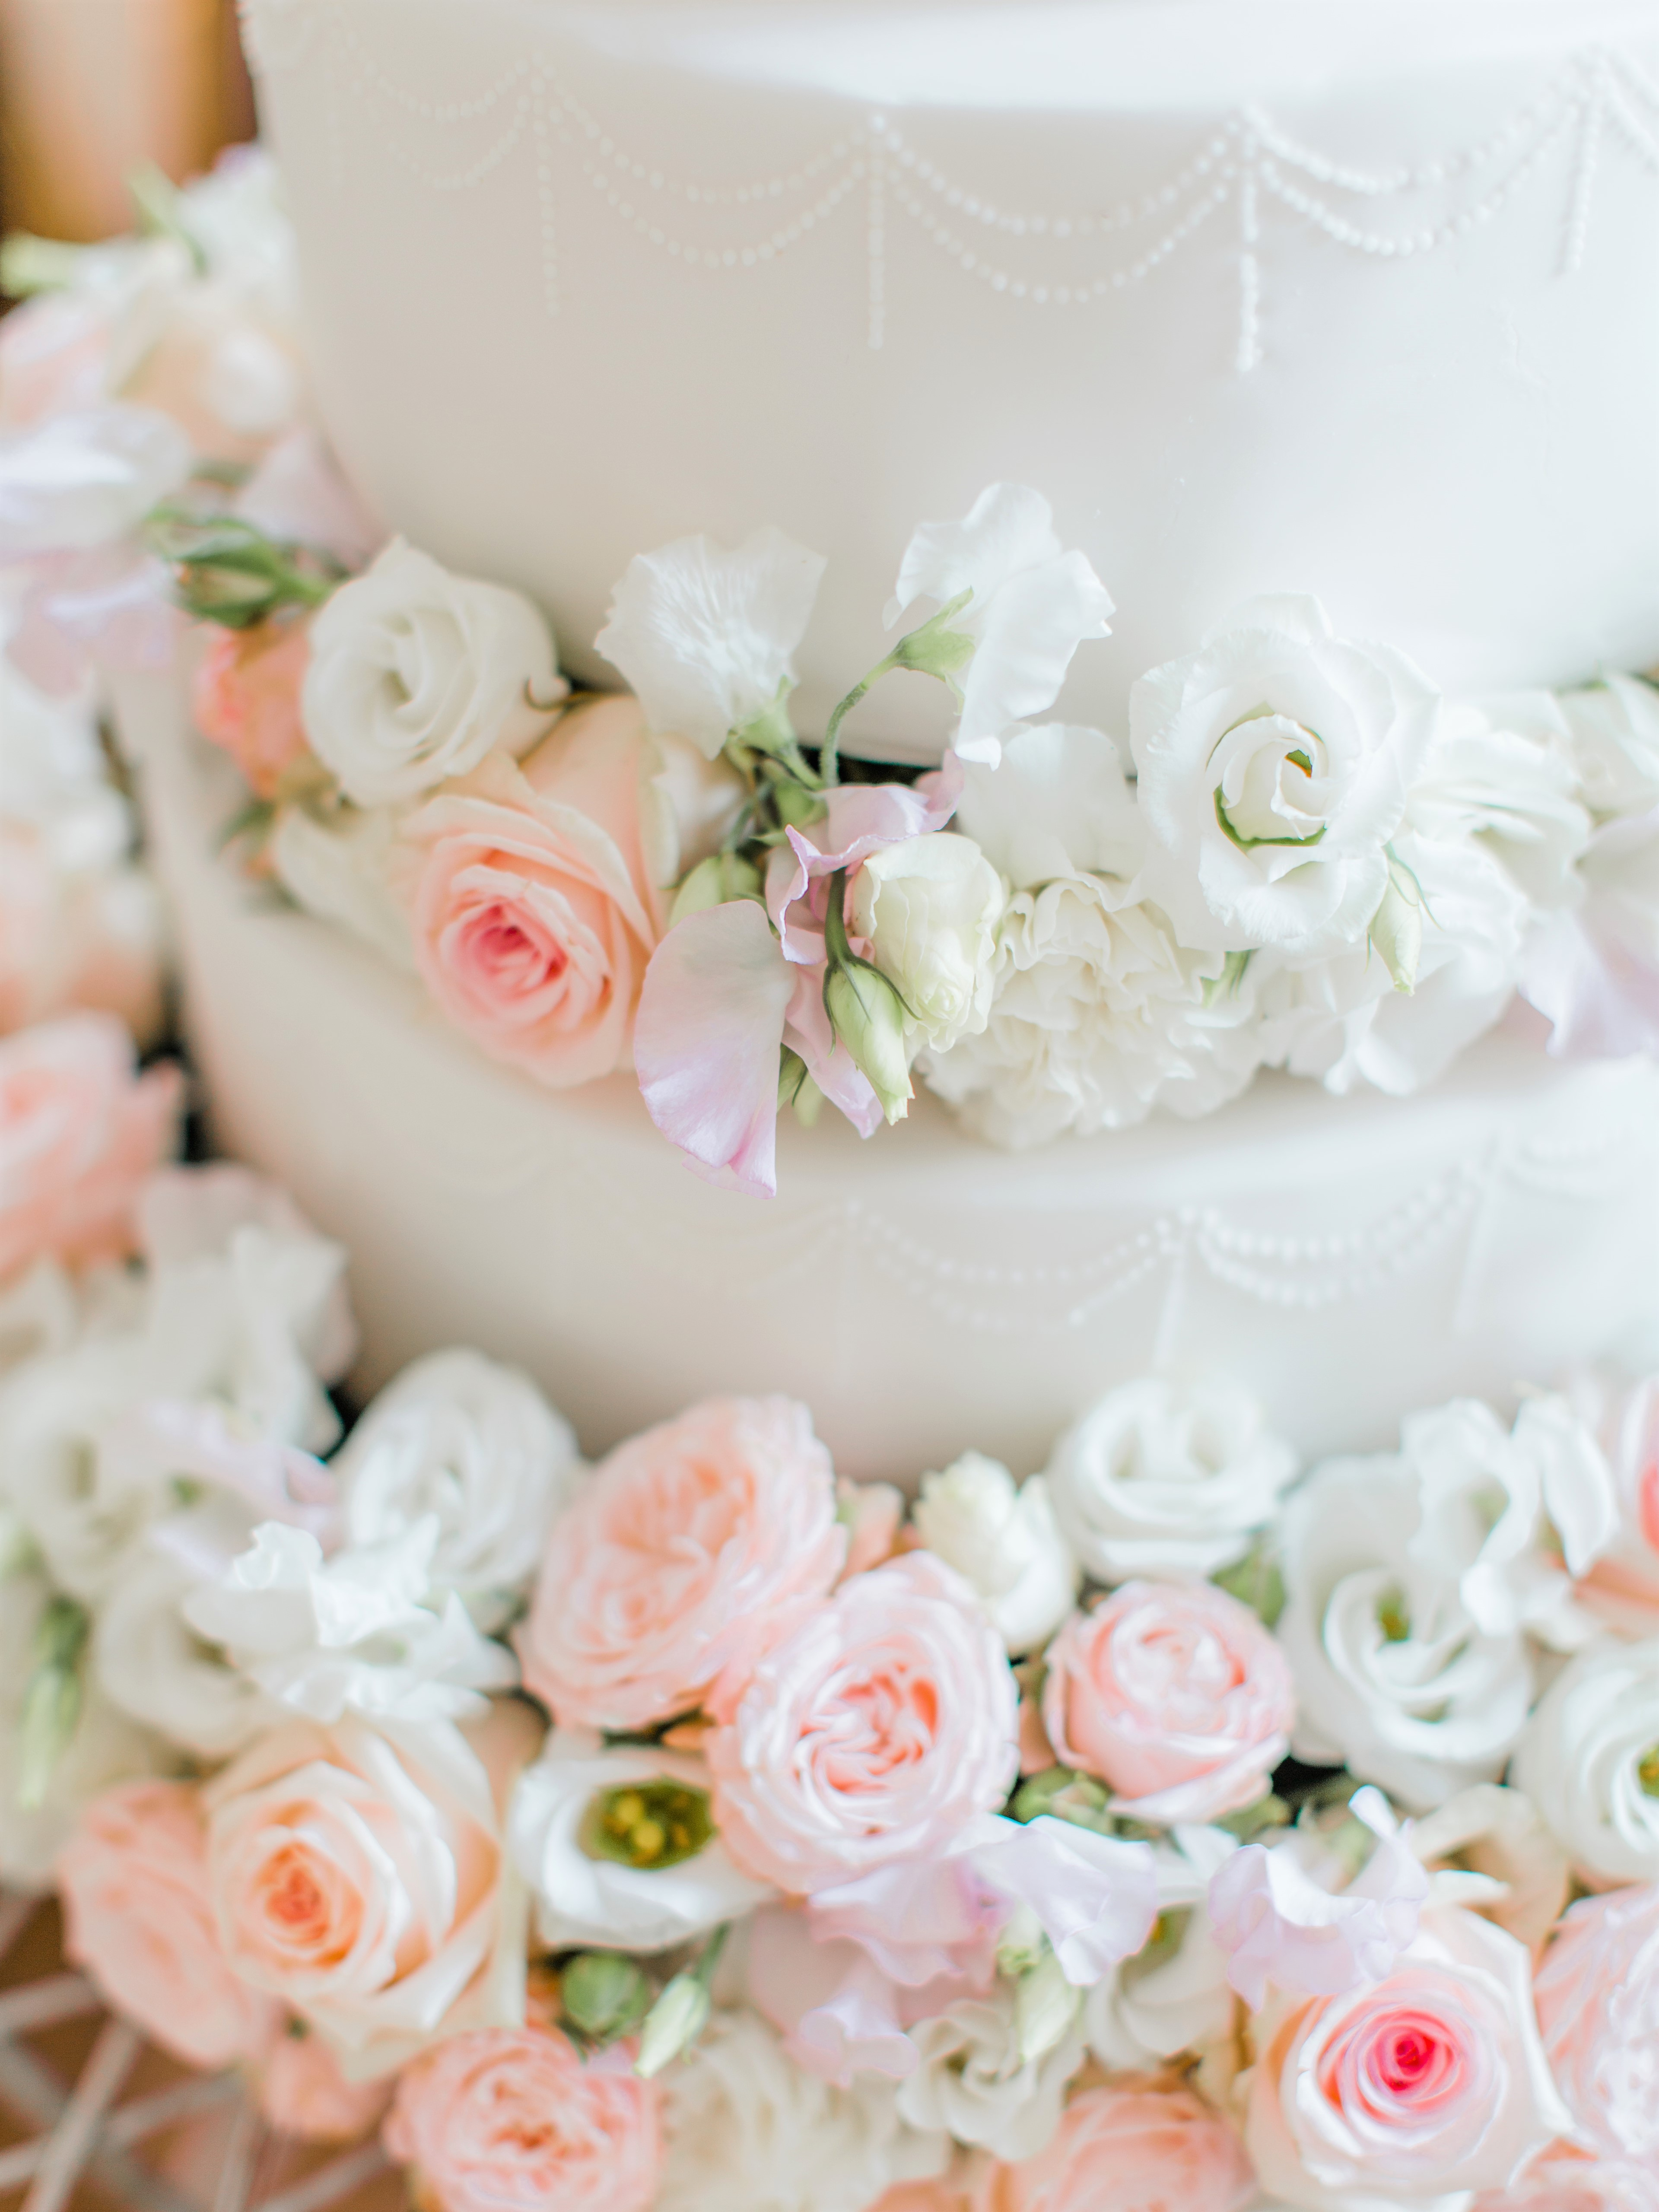 Cherie Kelly Dusty Pink and White Floral Fresh Flowers Wedding Cake